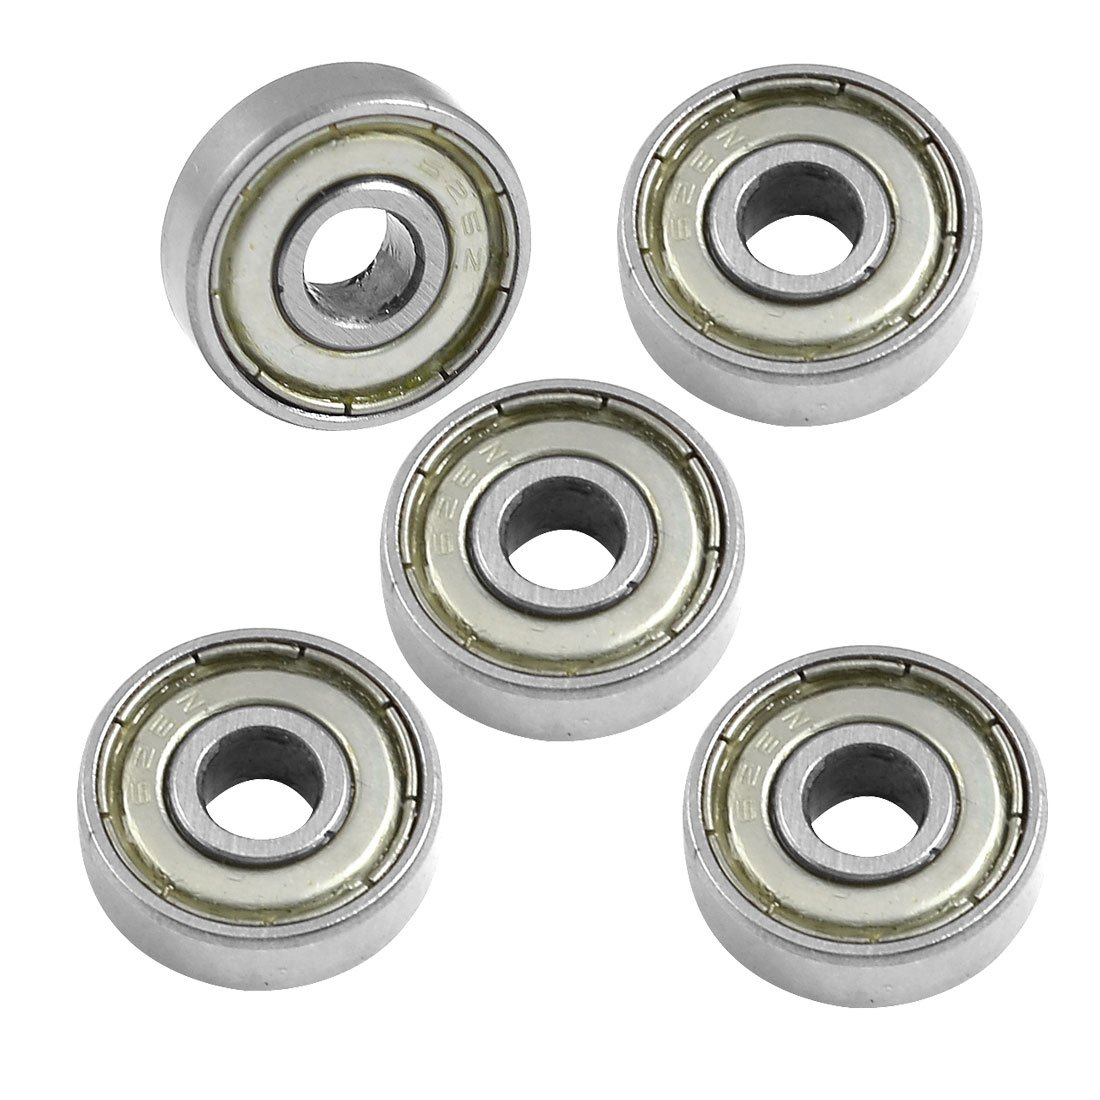 AUSD 626Z 6mm x 19mm x 6mm Shielded Radial Miniature Deep Groove Ball Bearing 5 pcs h p lovecraft he